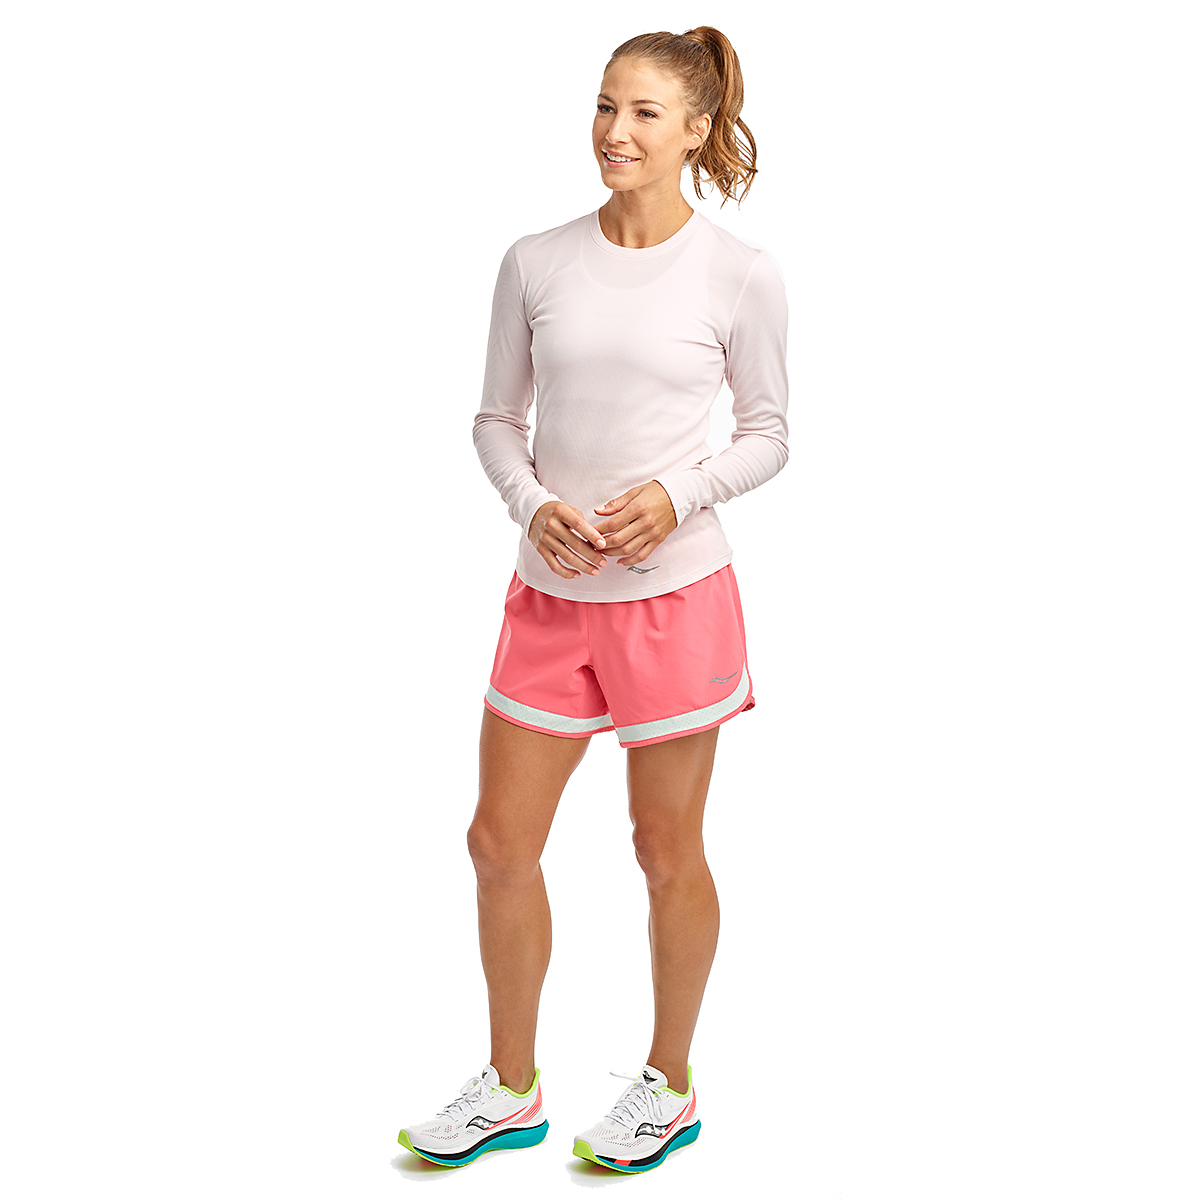 Women's Saucony Stopwatch Long Sleeve - Color: Barely Pink - Size: XXS, Barely Pink, large, image 3